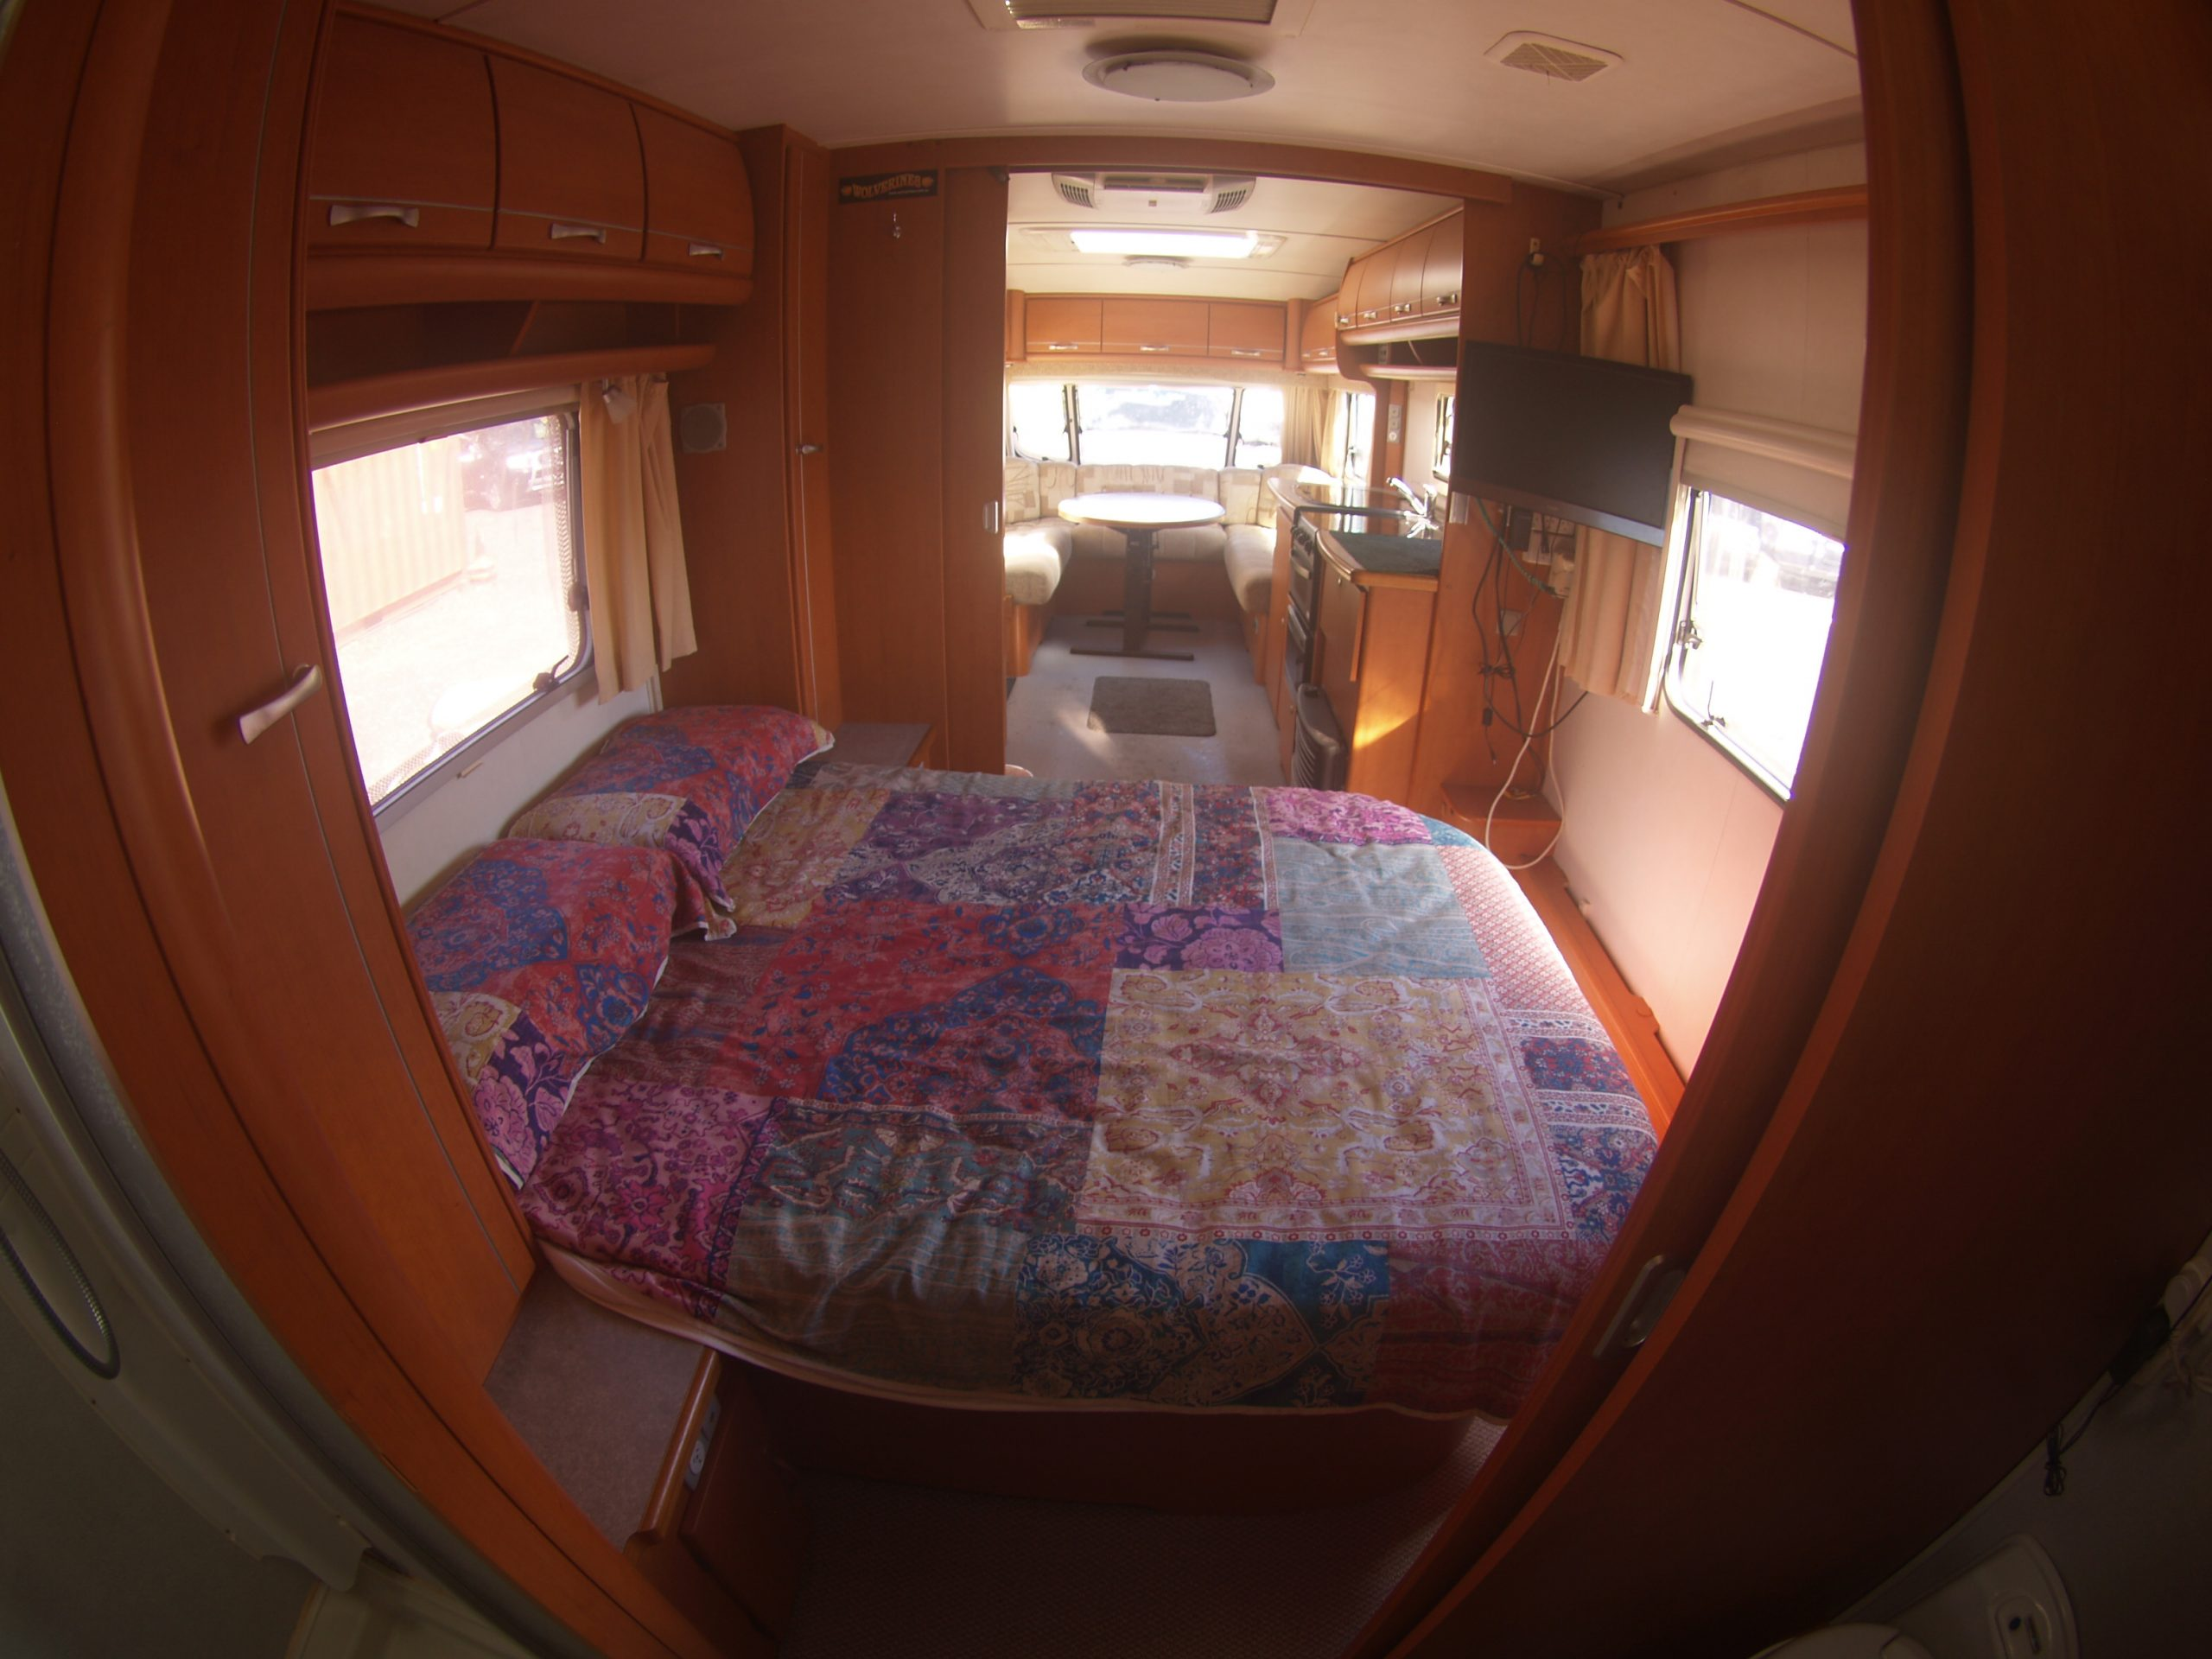 Geist XKlusiv 660 Caravan for Sale - Bedroom